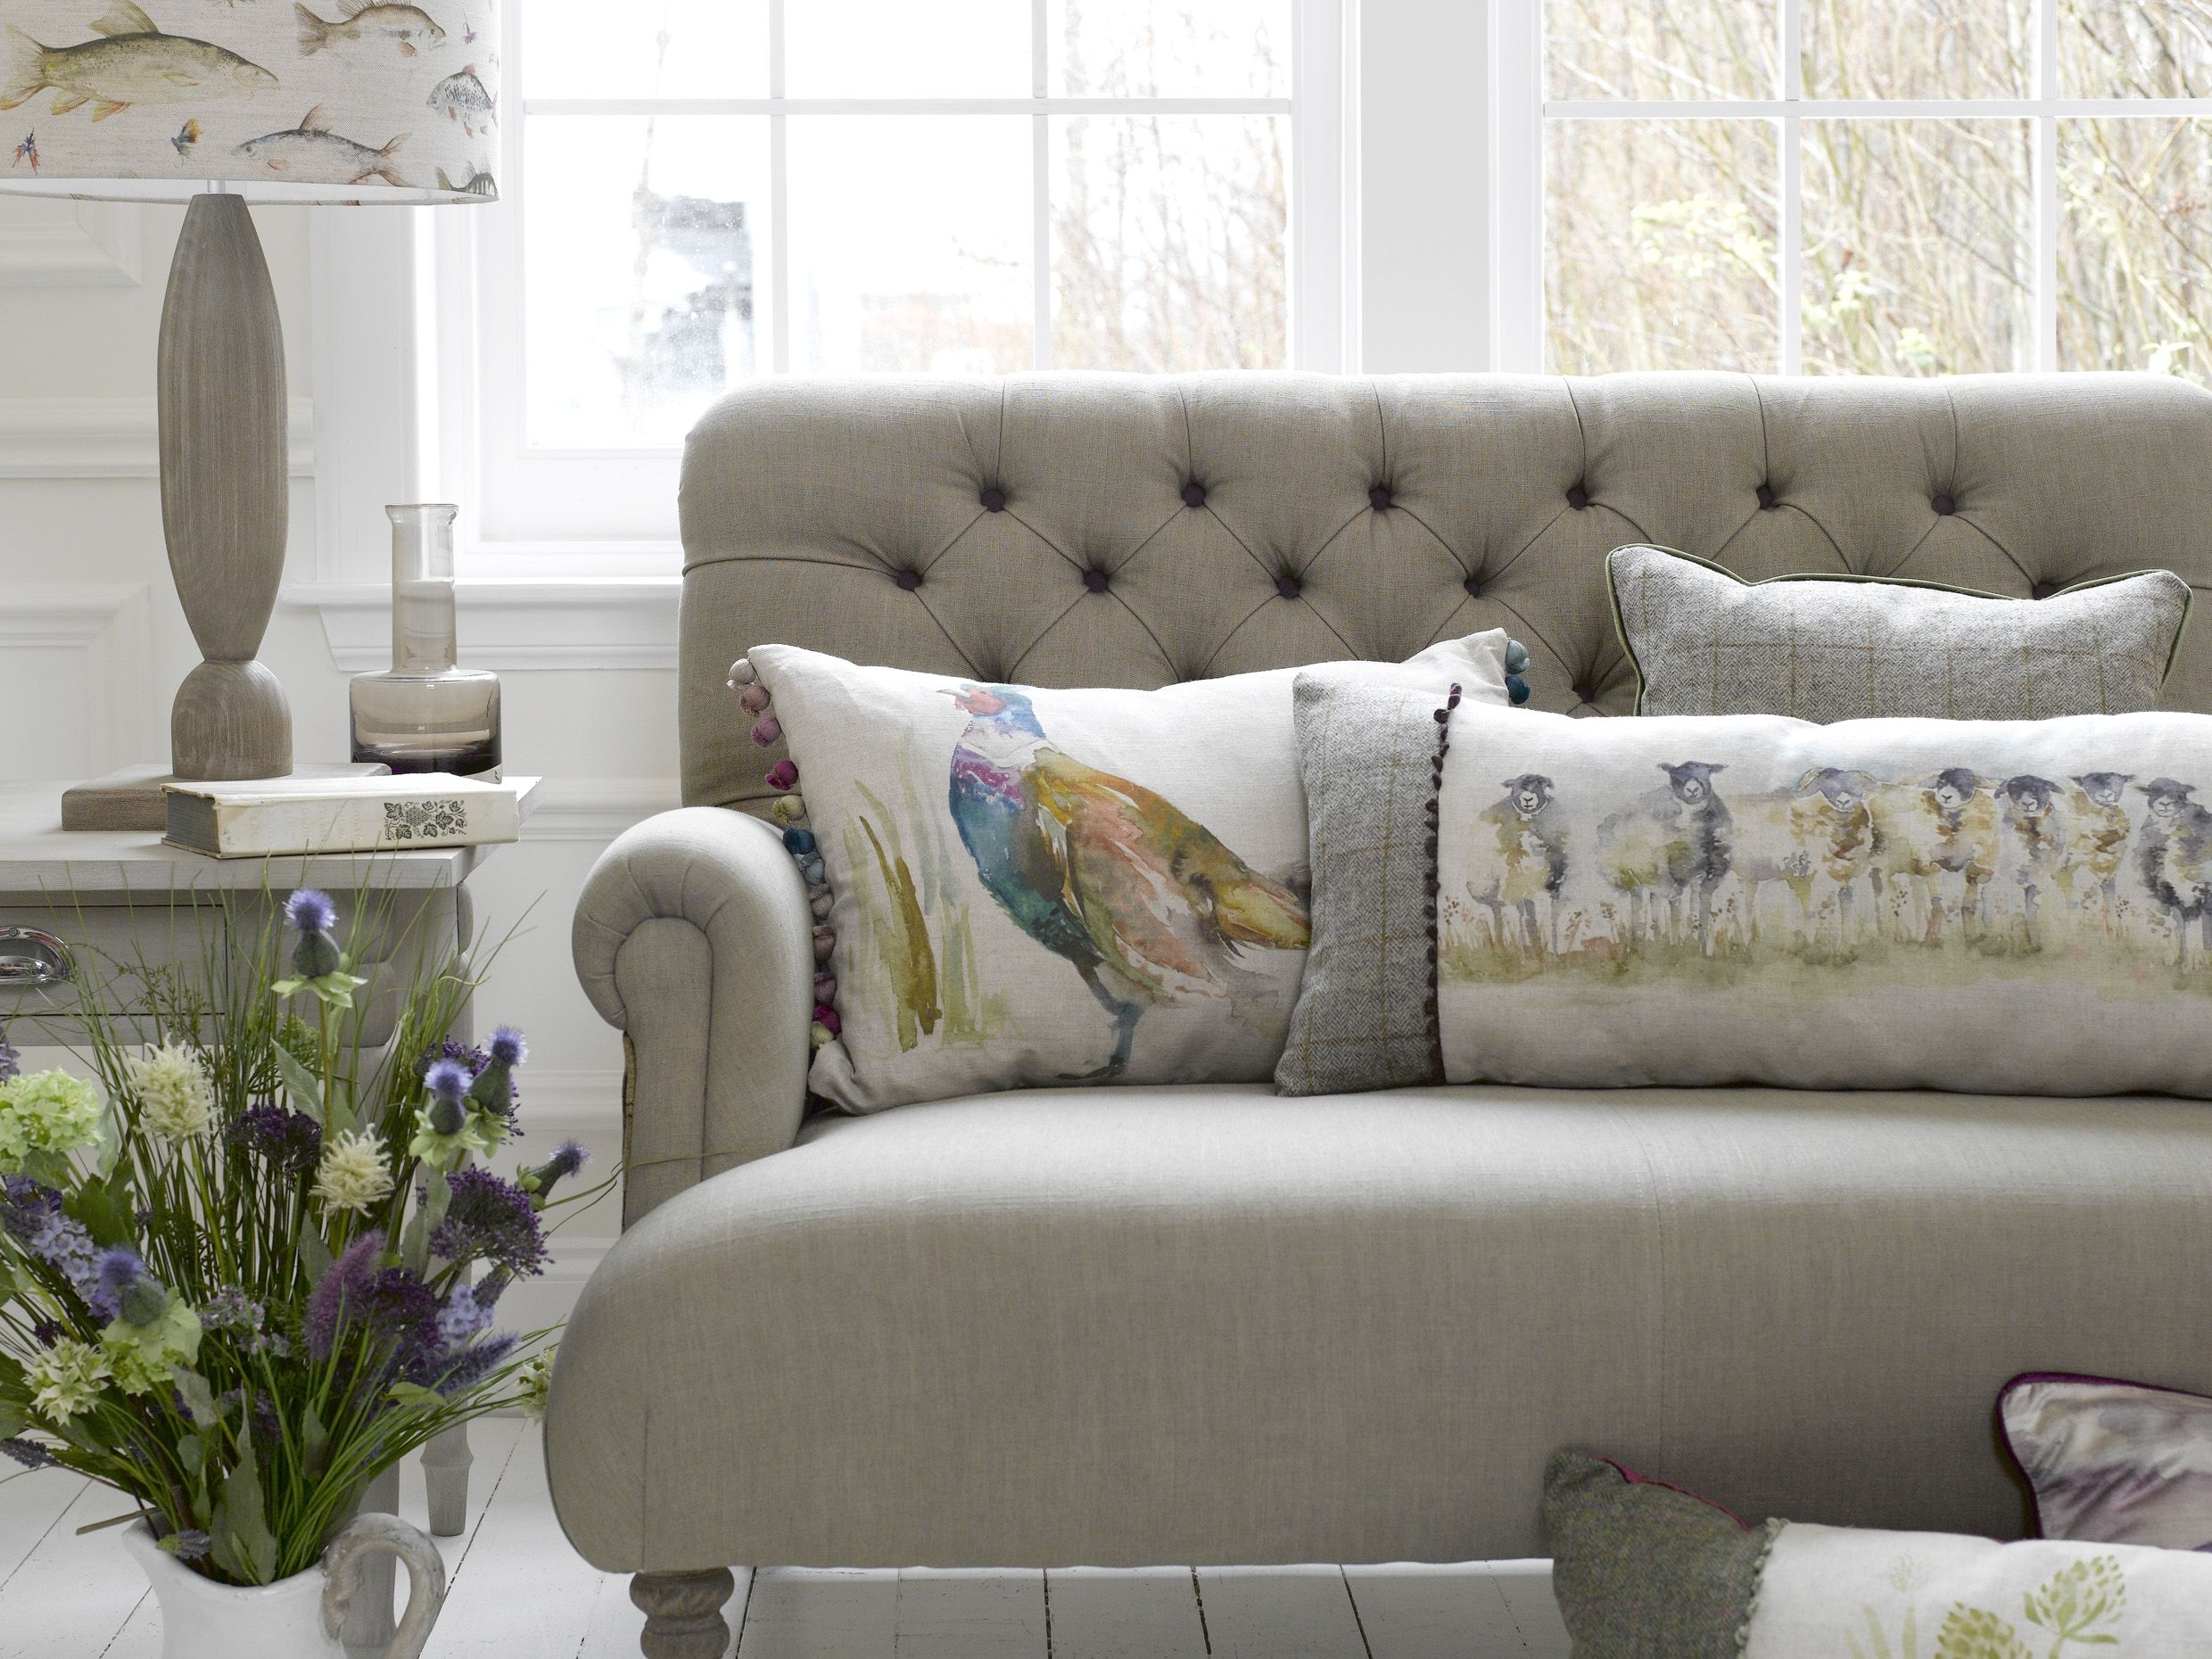 room living french couch interior decor decorating couches graphic design ideas modern country style classic